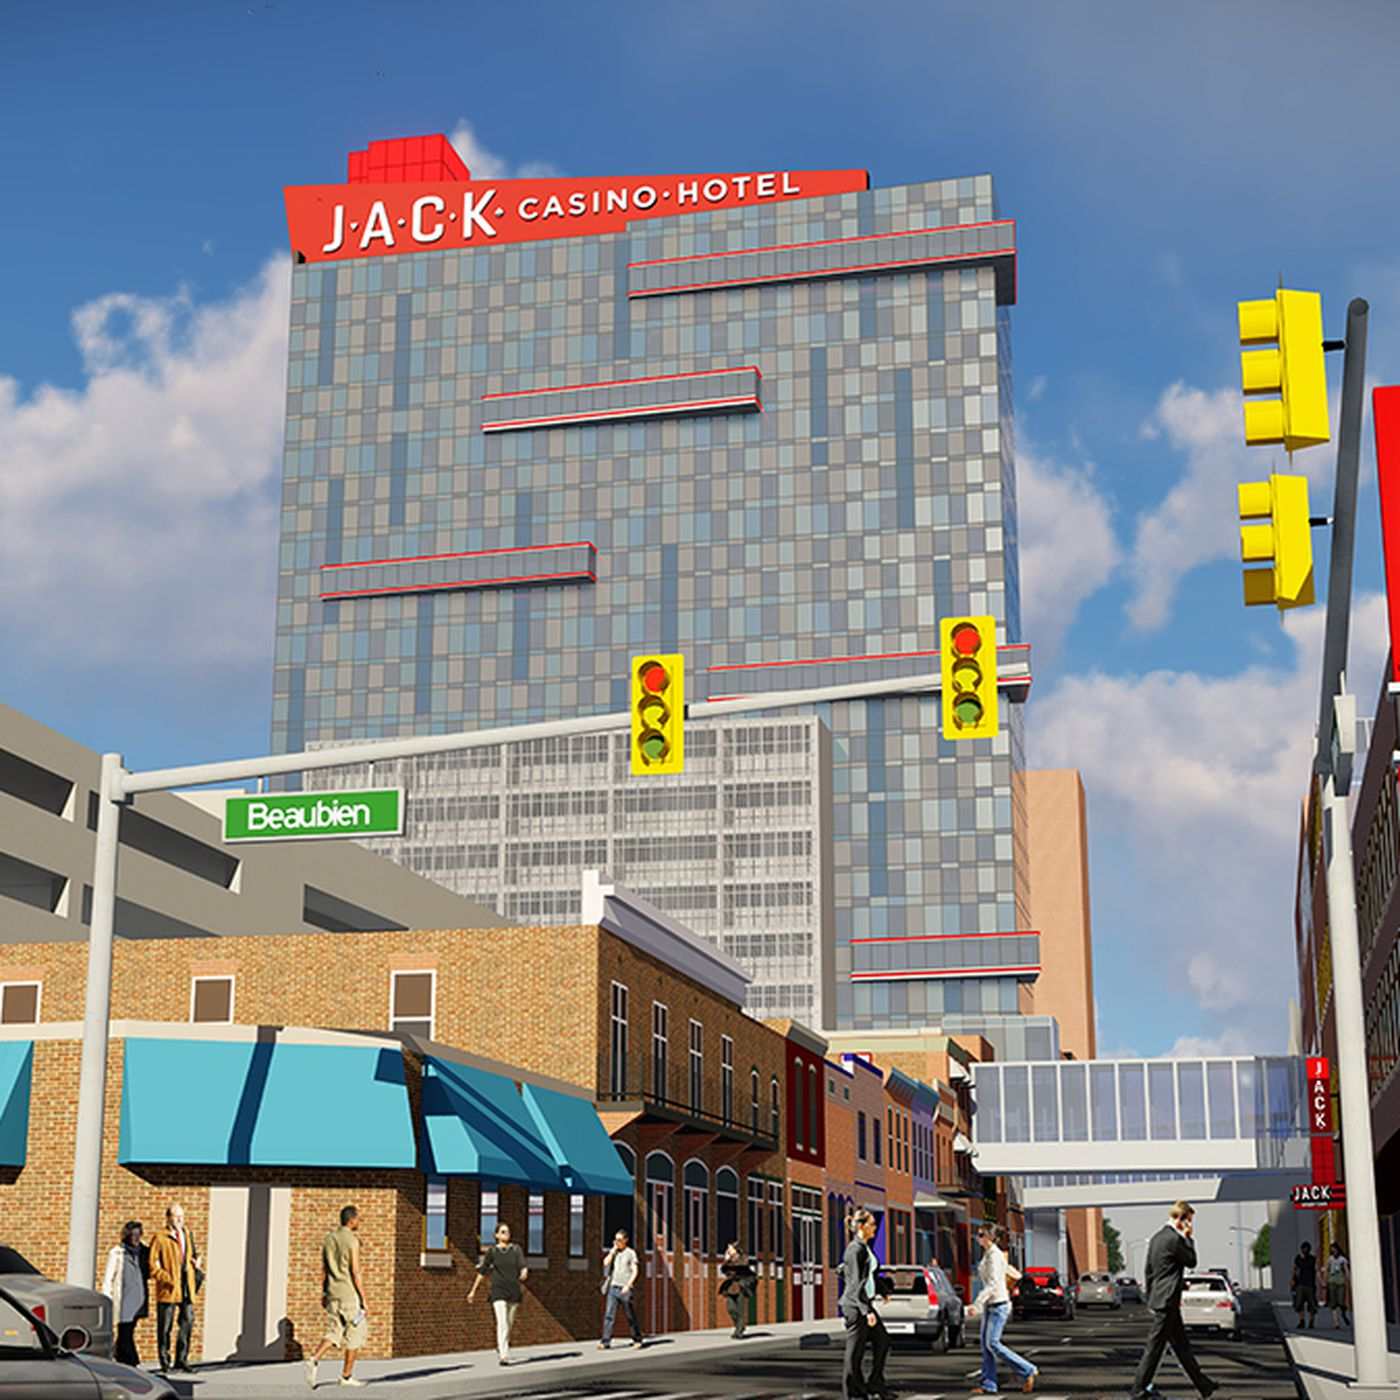 New years eve greektown casino detroit joint venture an online casino concepts